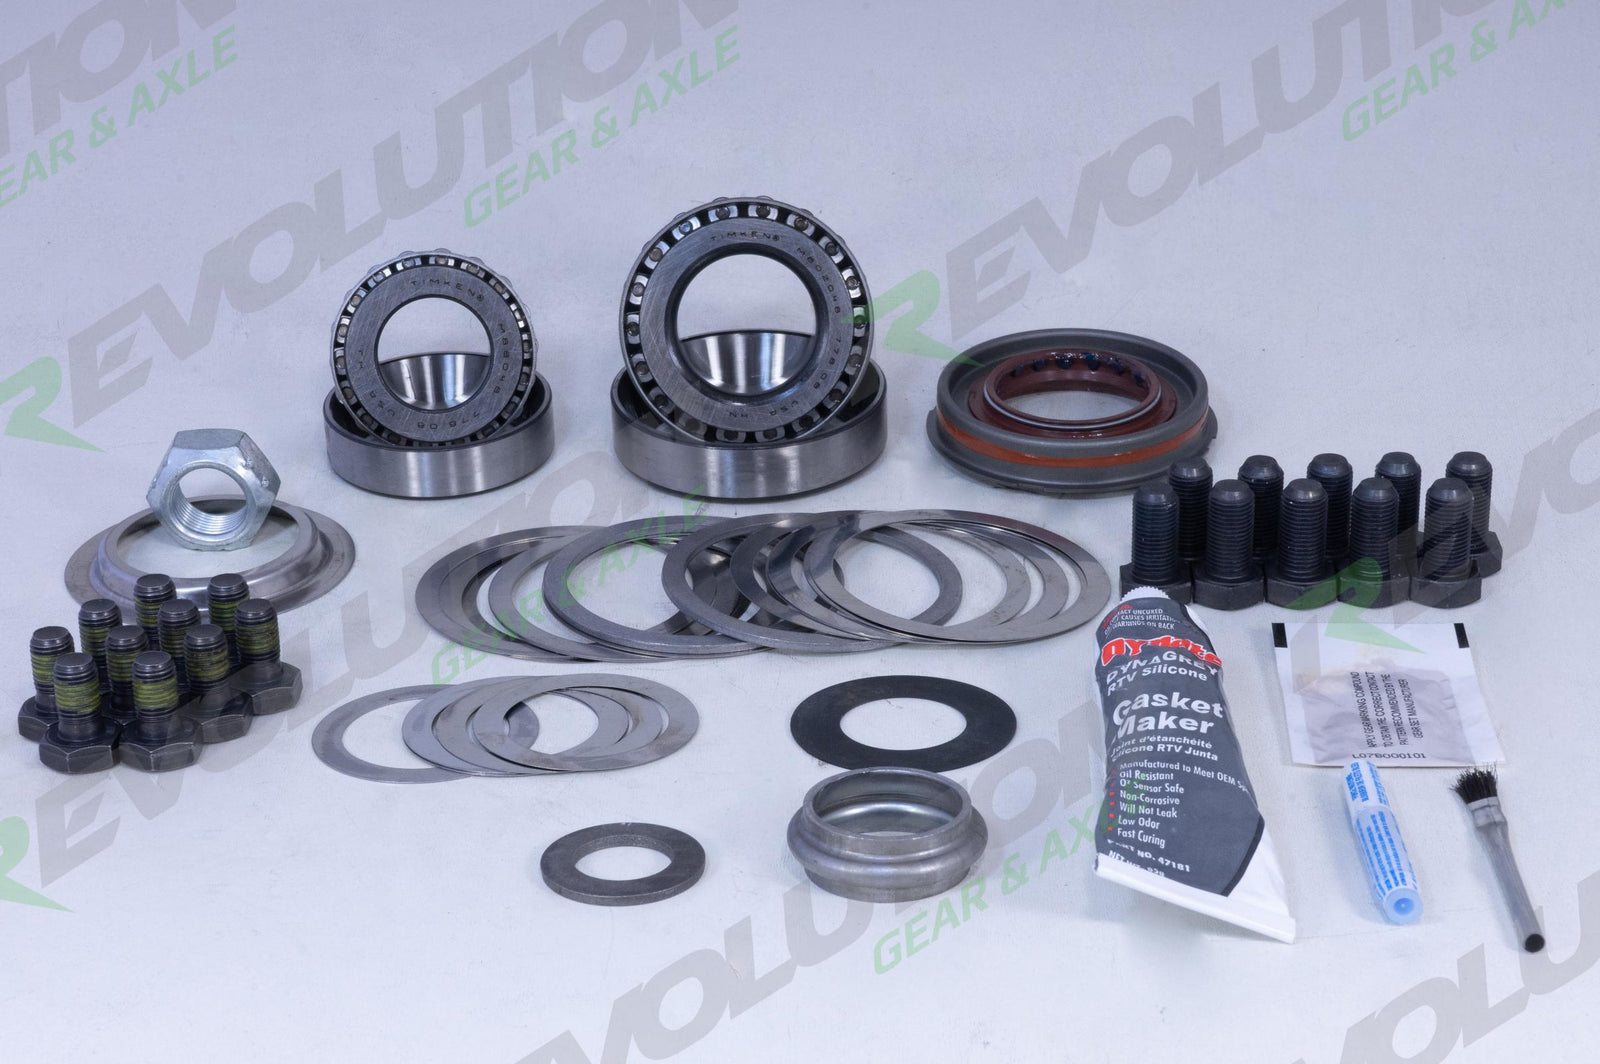 Dana 44 2007-18 Jeep JK Rear (All Models) Pinion Bearing and Seal Kit (No Carrier Bearings) Revolution Gear - HQ Offroad